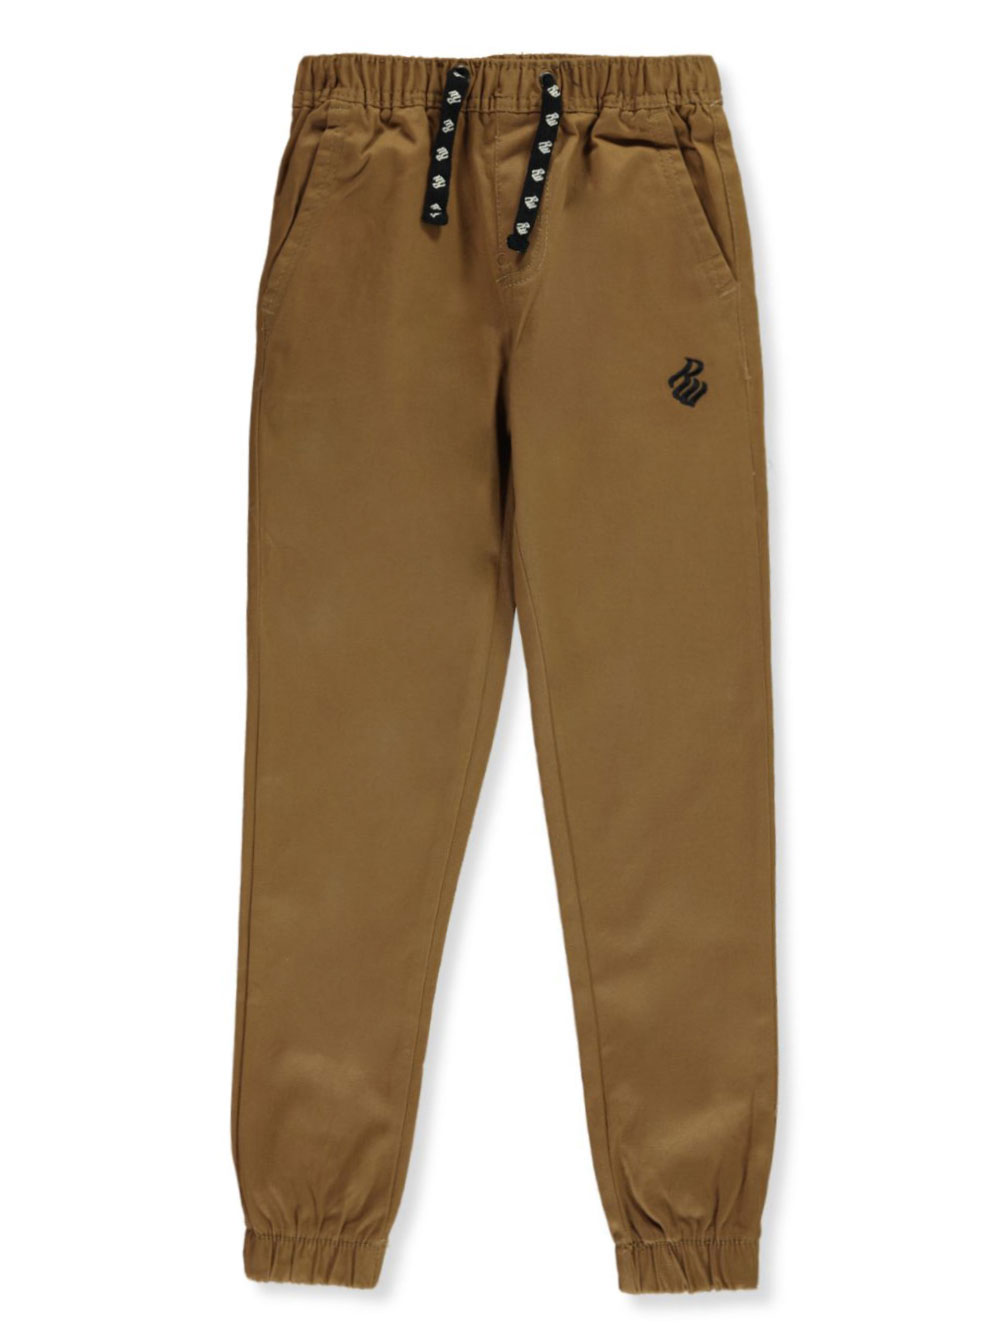 Wheat Pants